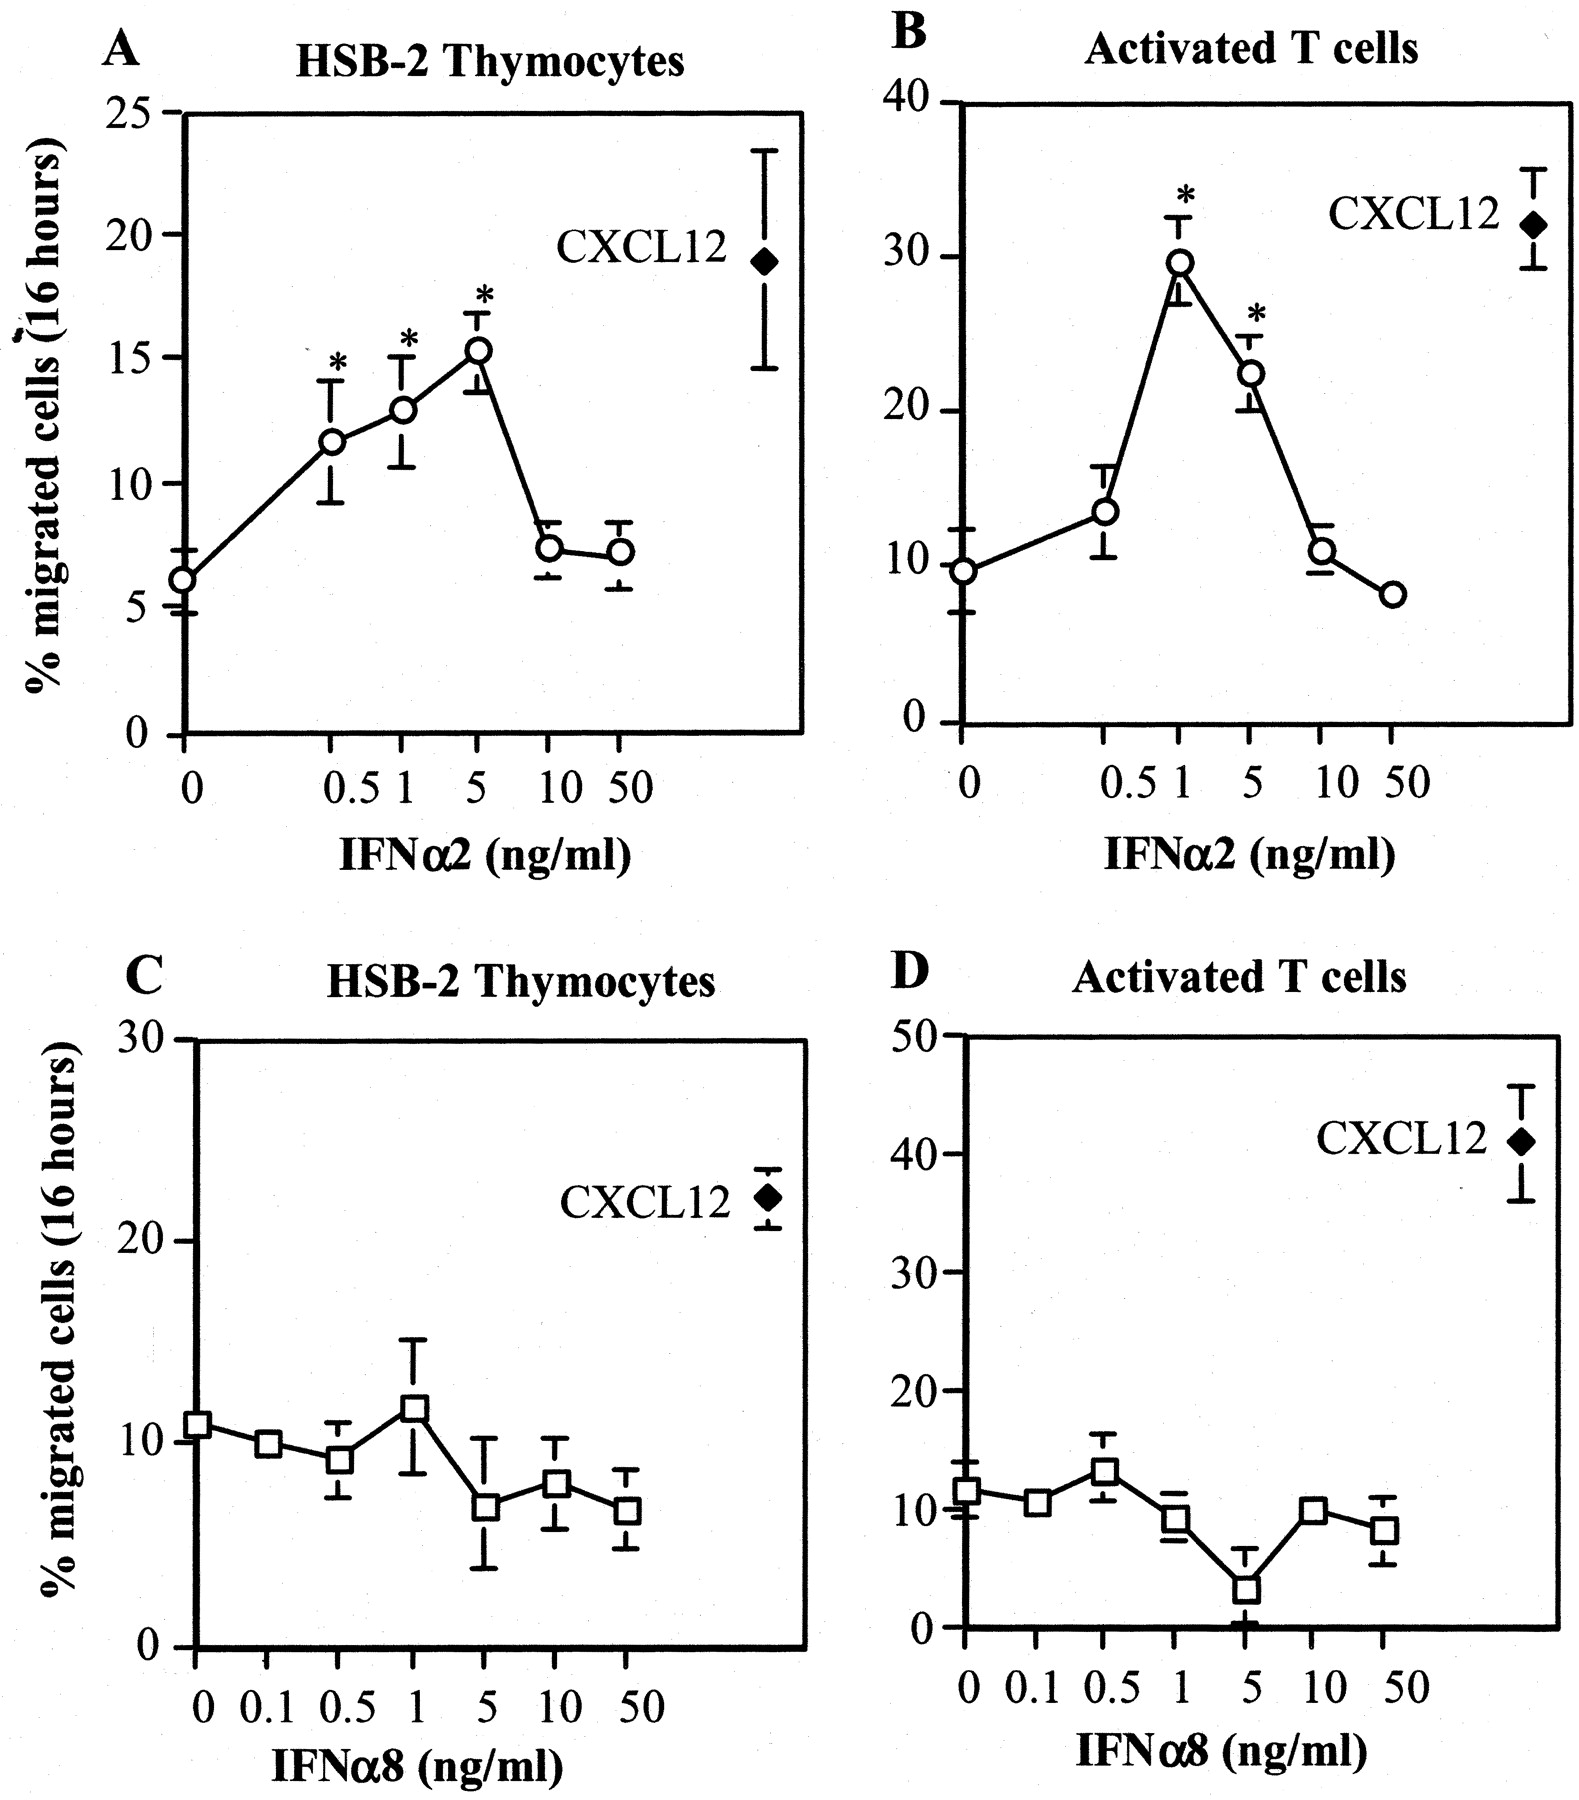 IFN-α Subtypes Differentially Affect Human T Cell Motility